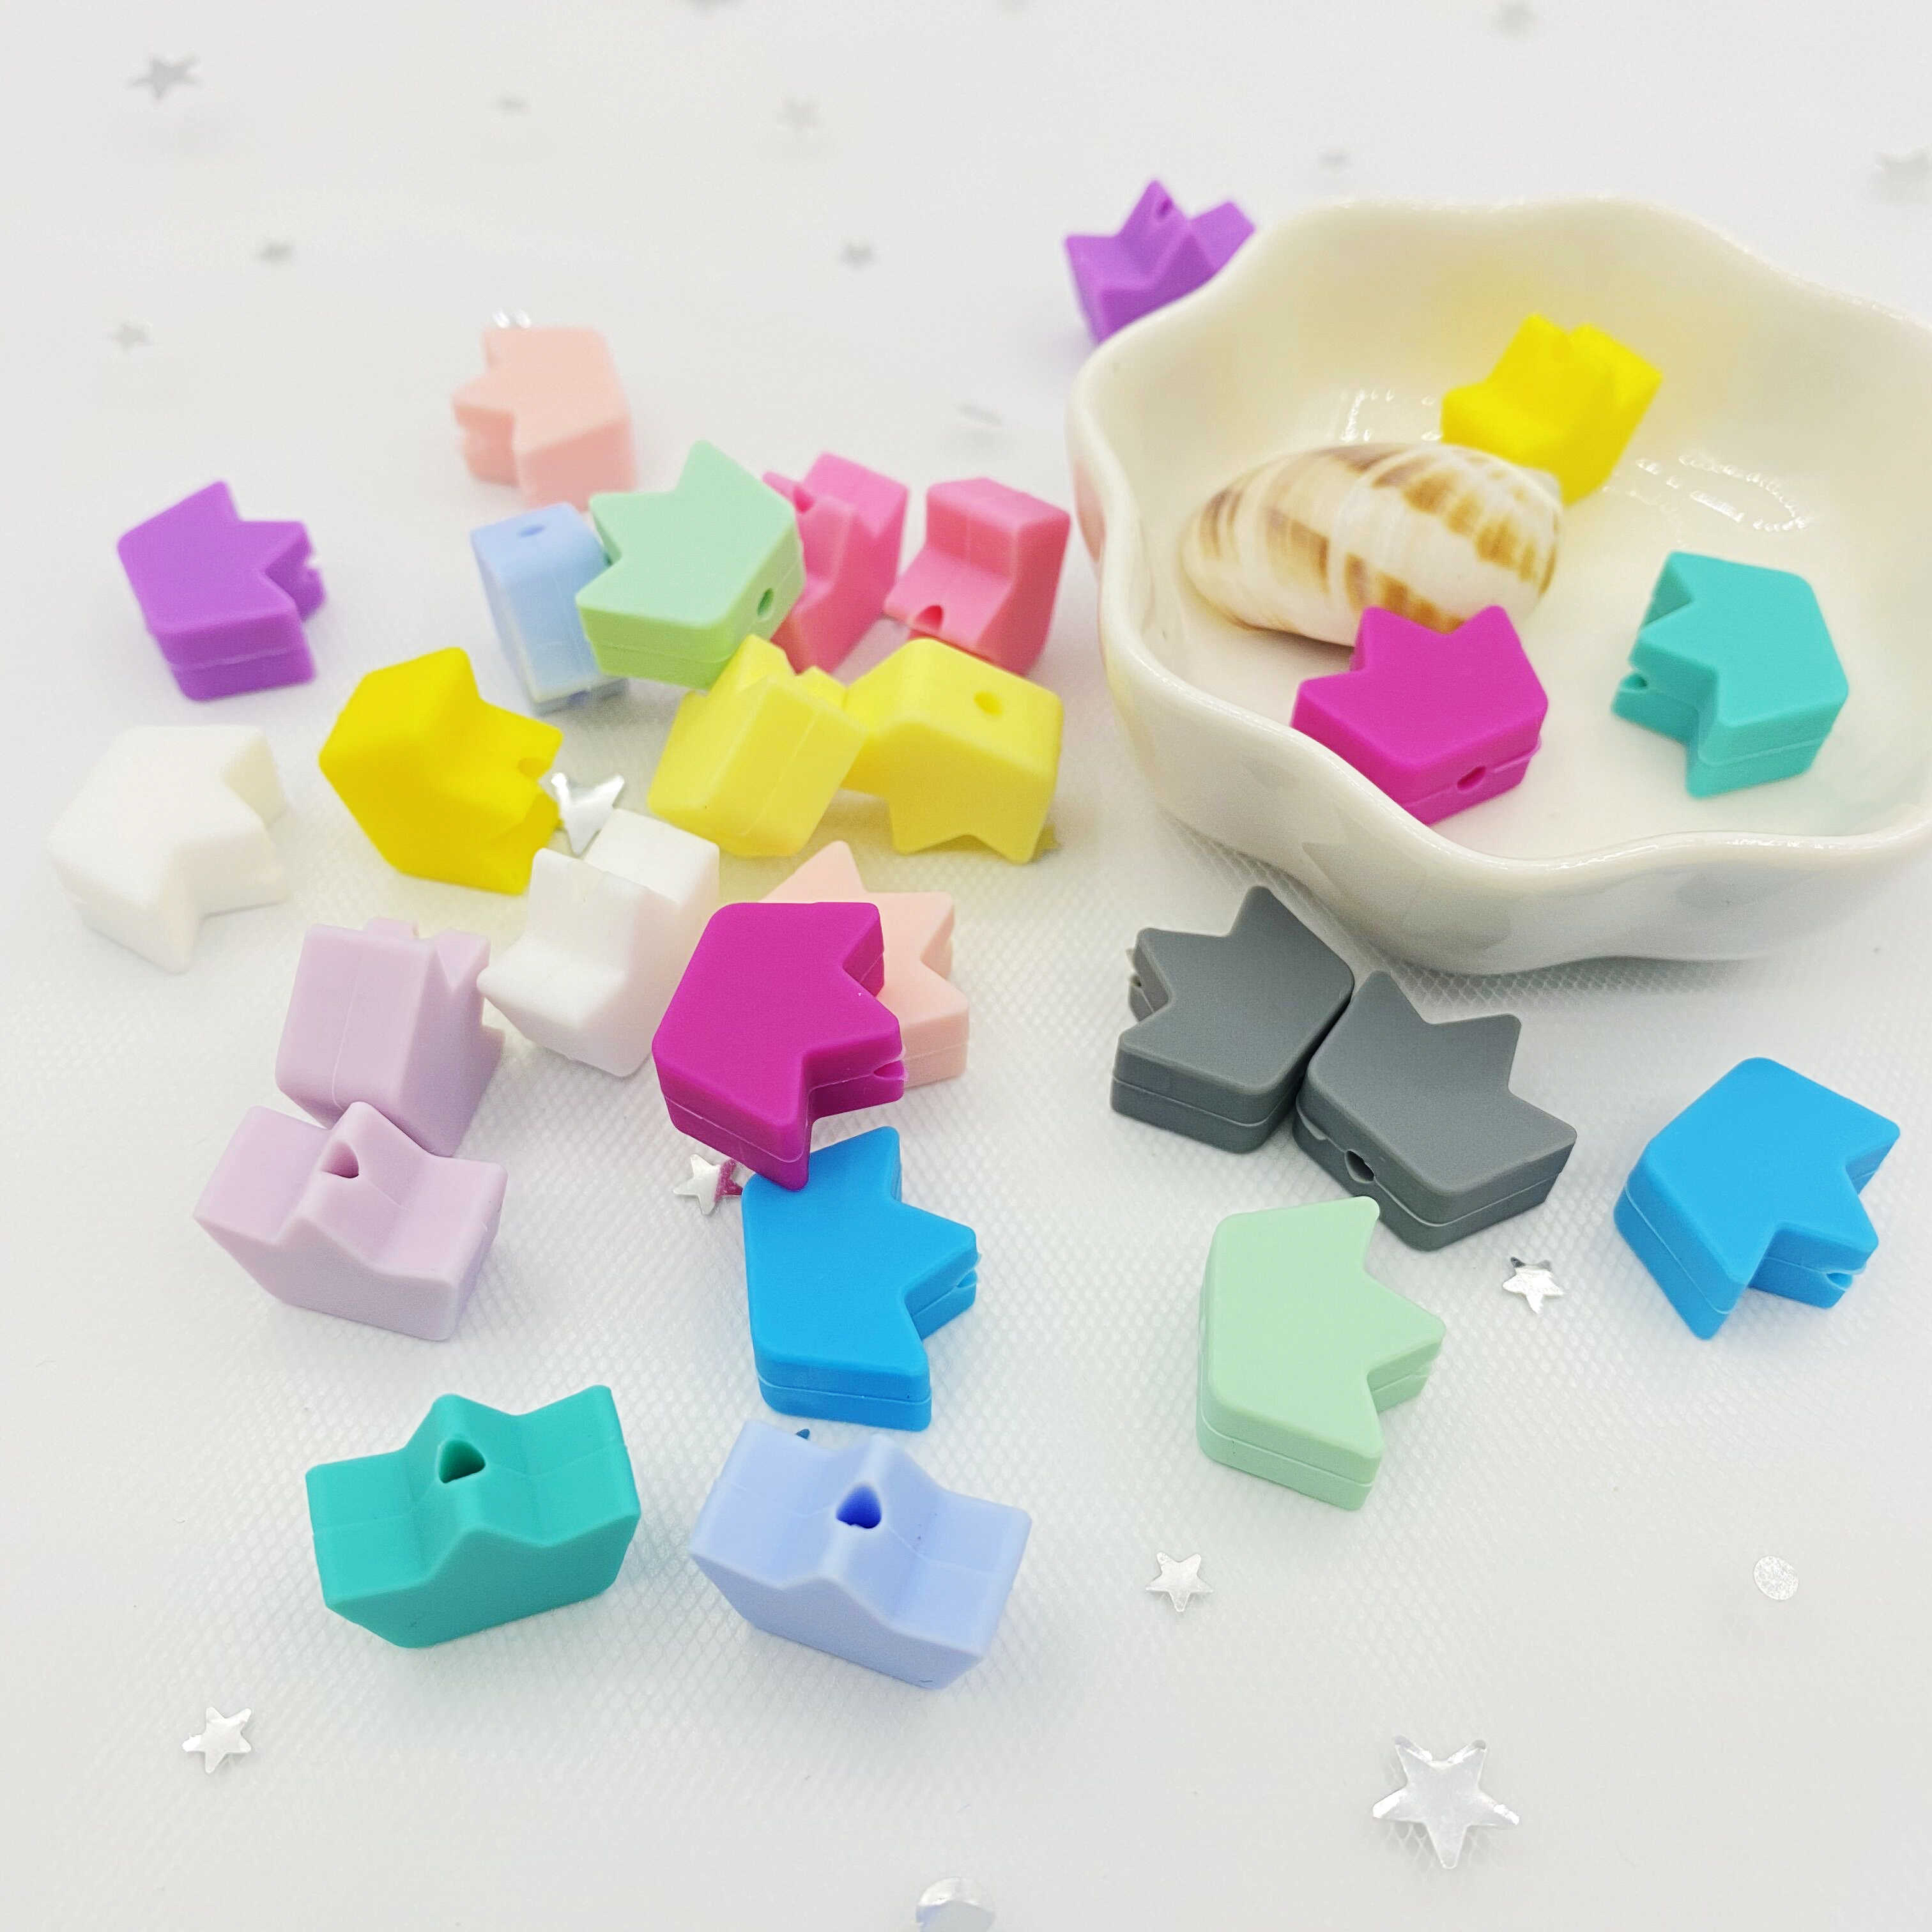 10pcs Food grade silicone Teether Crown beads DIY Baby Pacifier clip Molar toy